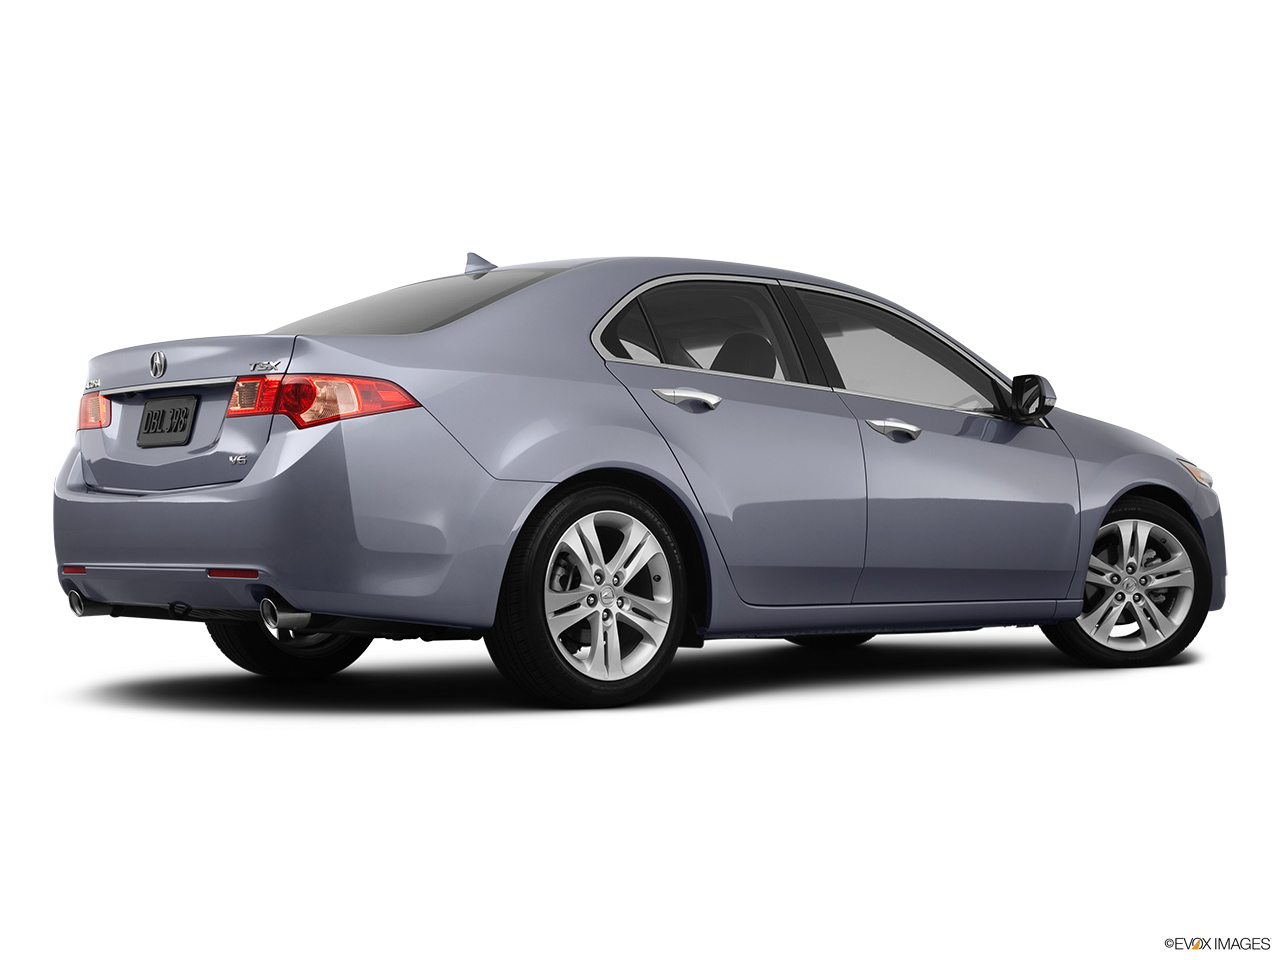 2013 acura tsx reviews acura tsx price photos and specs. Black Bedroom Furniture Sets. Home Design Ideas